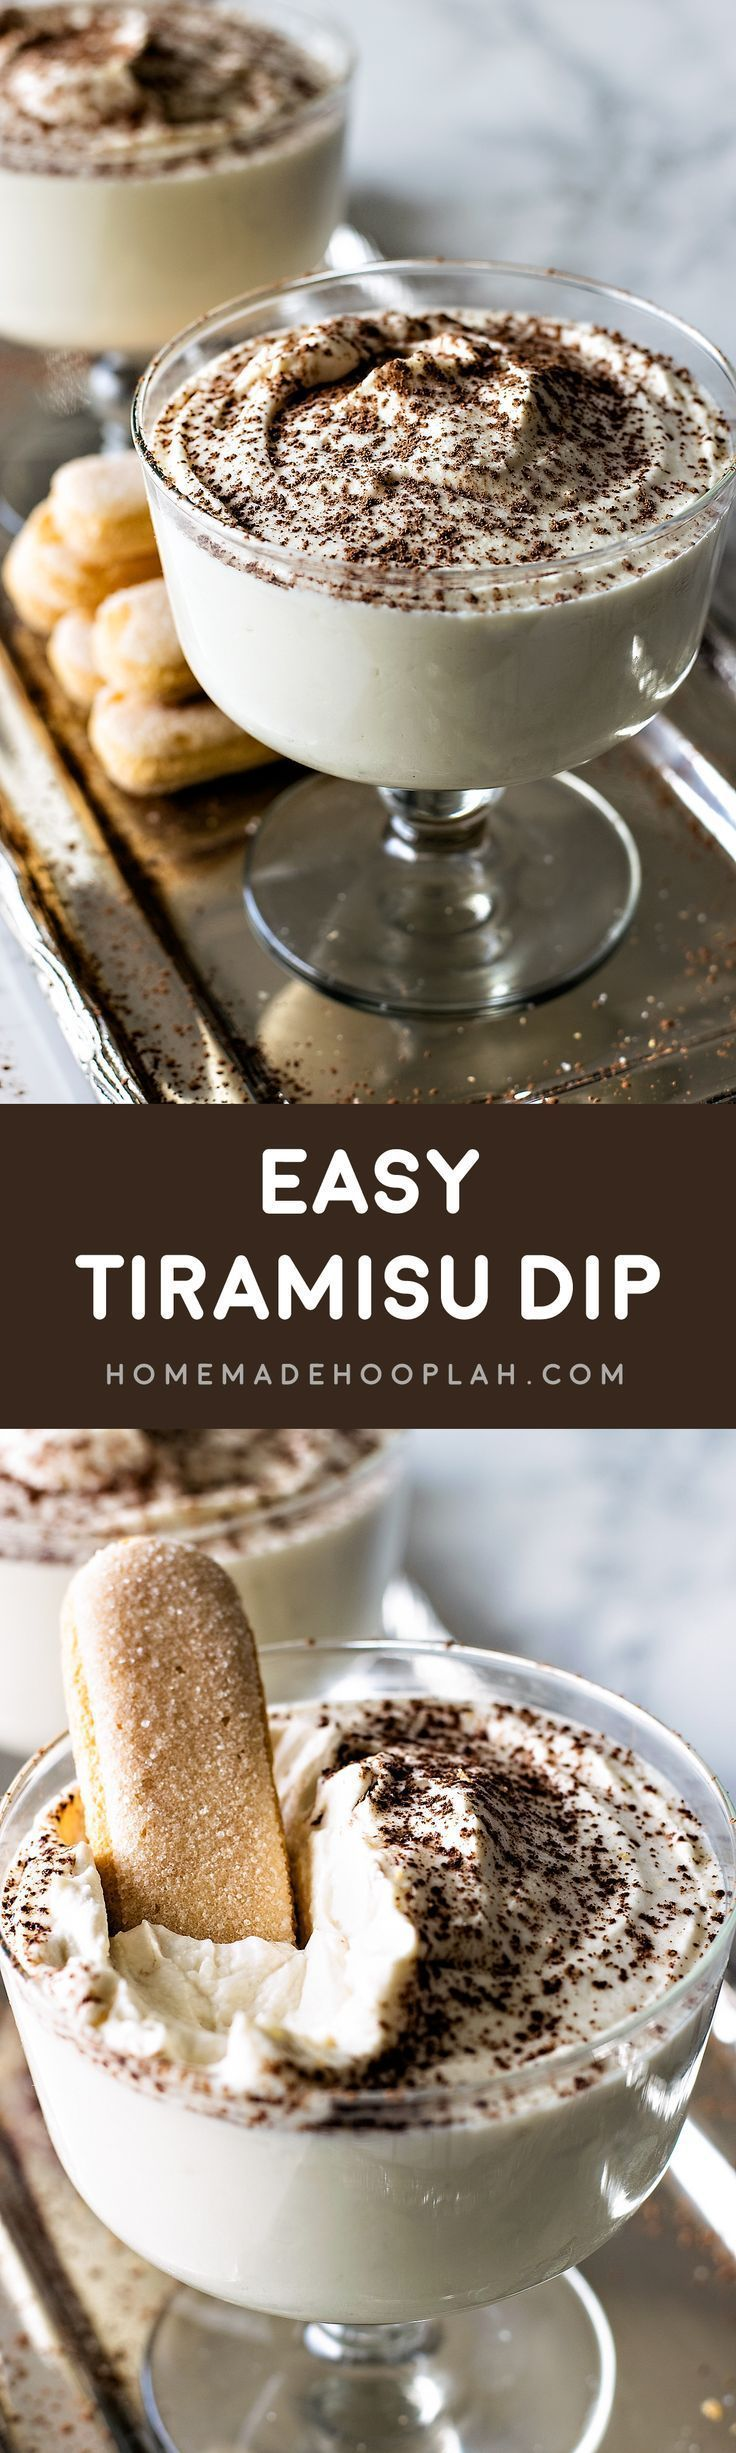 Easy Tiramisu Dip! A decadent dip that tastes just like a tiramisu dessert but made in a fraction of the time. All the taste without all the trouble!   http://HomemadeHooplah.com